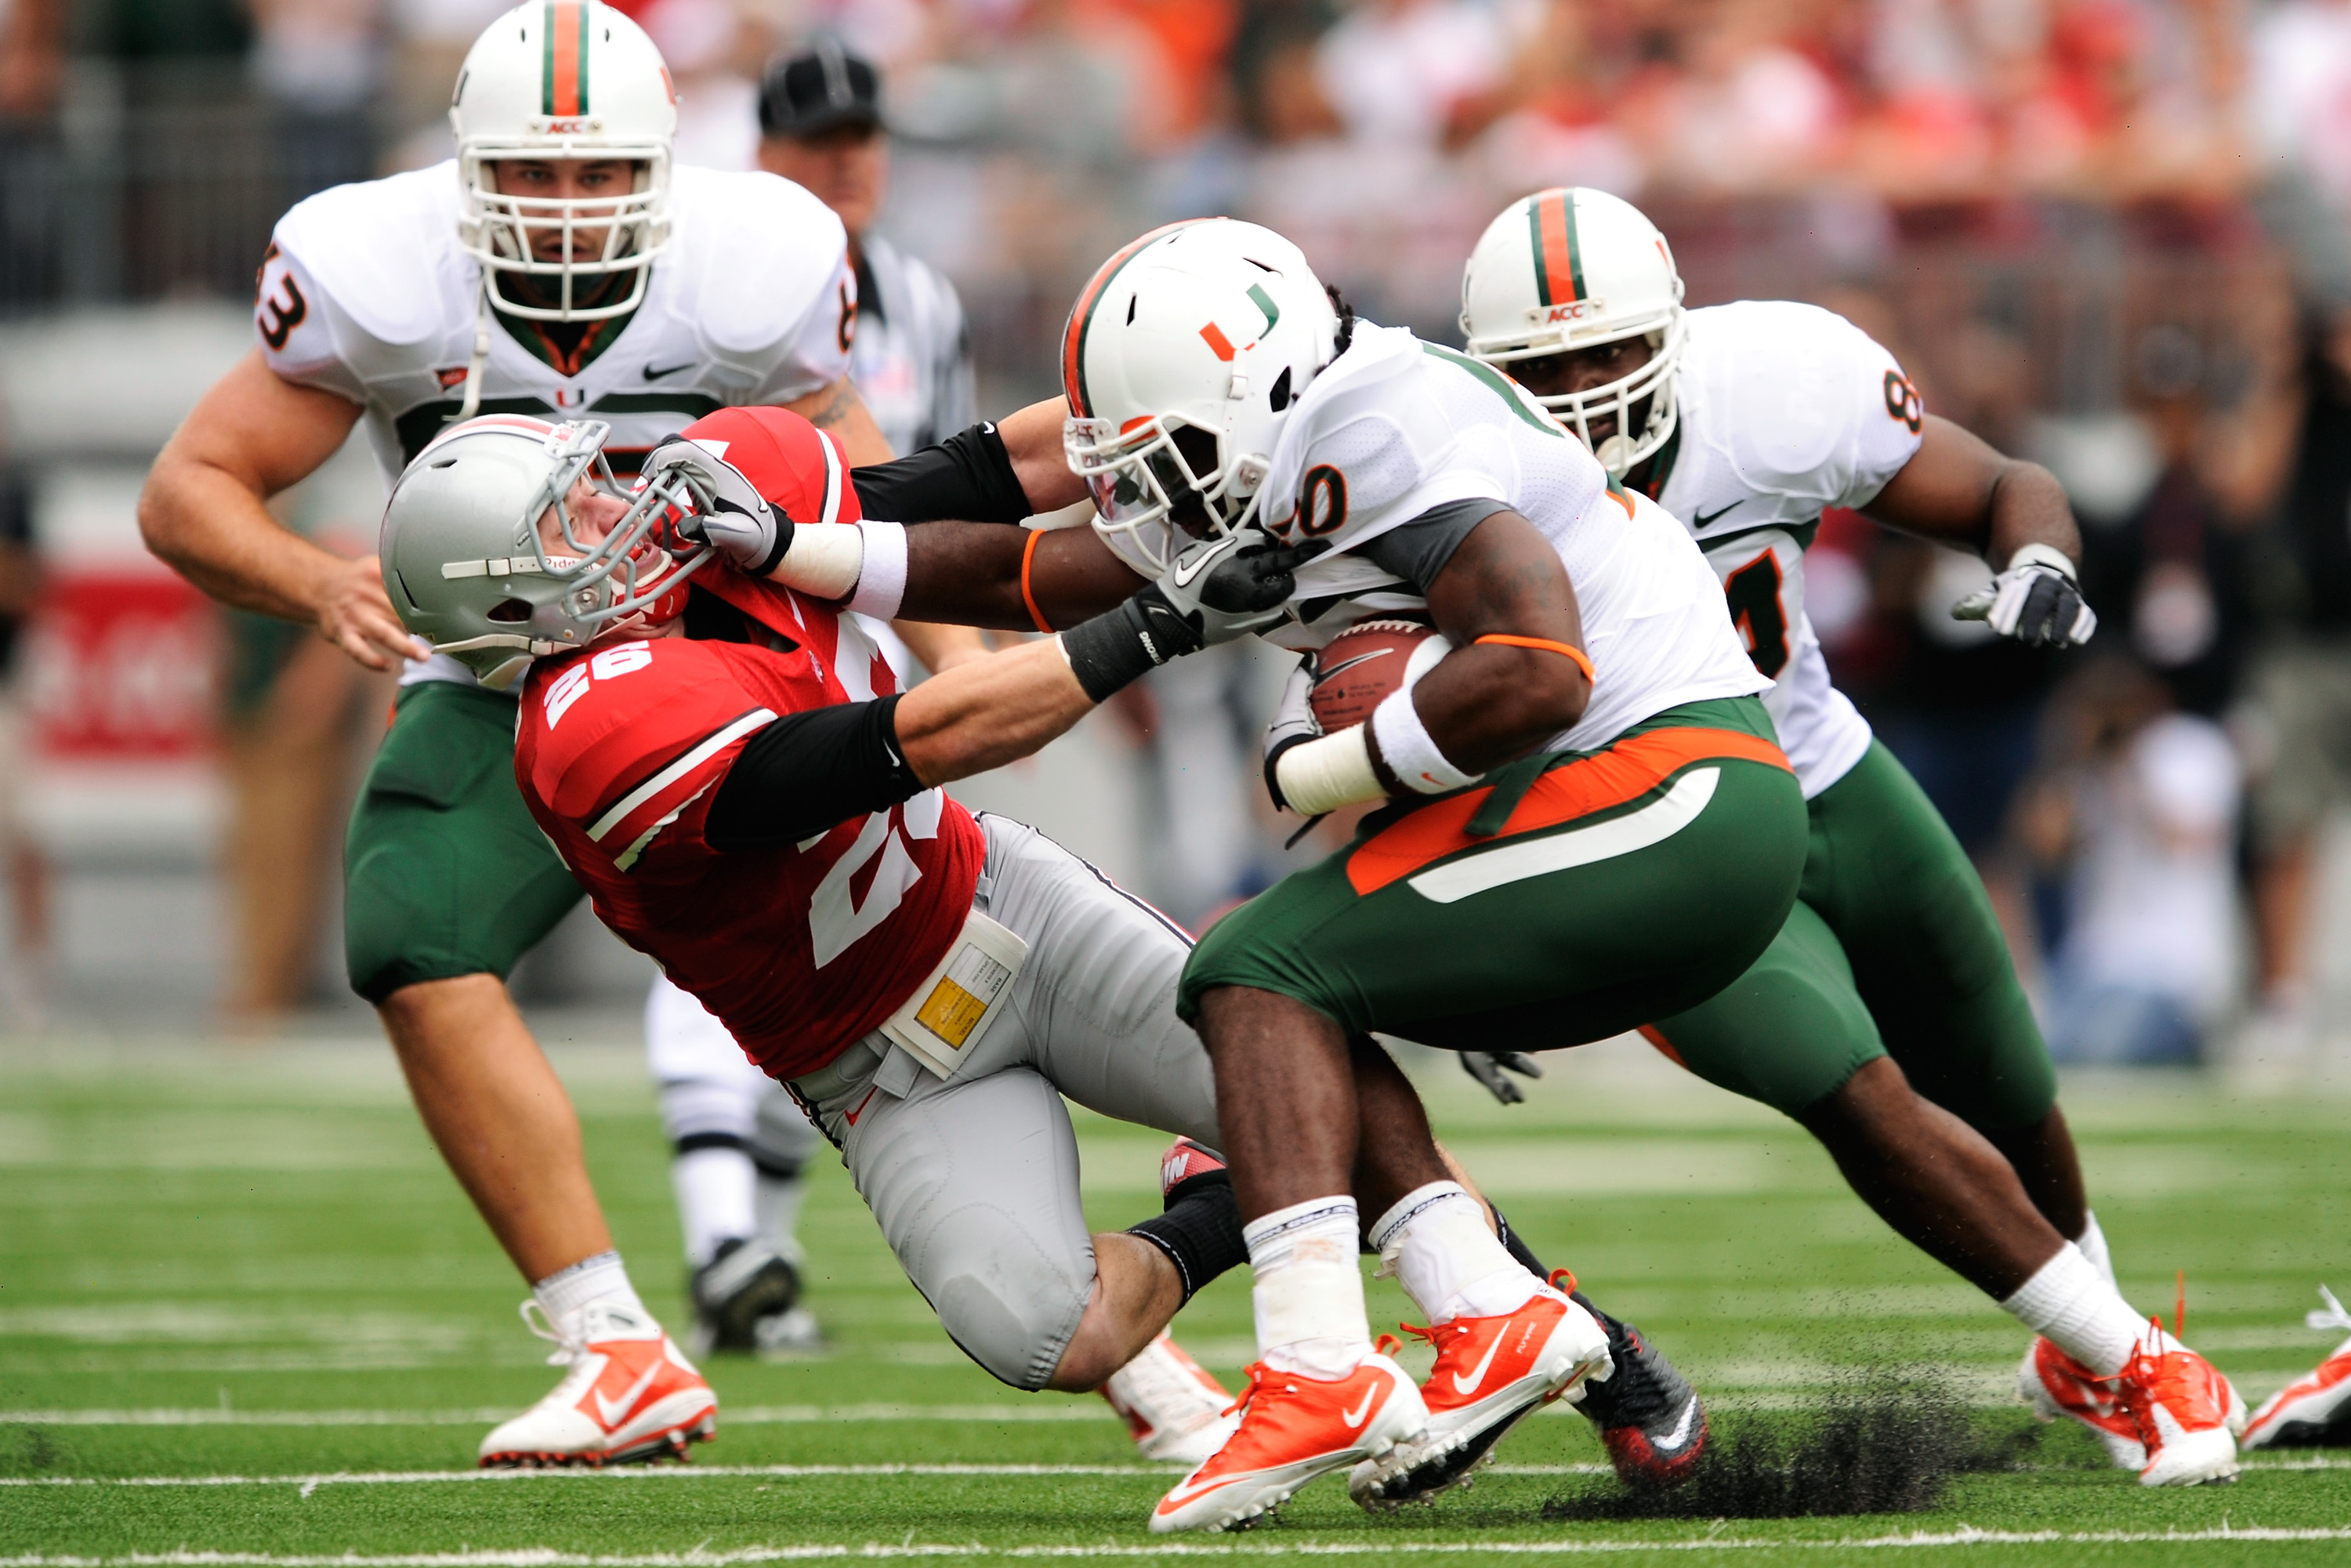 COLUMBUS, OH - SEPTEMBER 11:  Damien Berry #20 of the Miami Hurricanes stiff arms Tyler Moeller #26 of the Ohio State Buckeyes as Moeller attempts to tackle Berry at Ohio Stadium on September 11, 2010 in Columbus, Ohio.  (Photo by Jamie Sabau/Getty Images